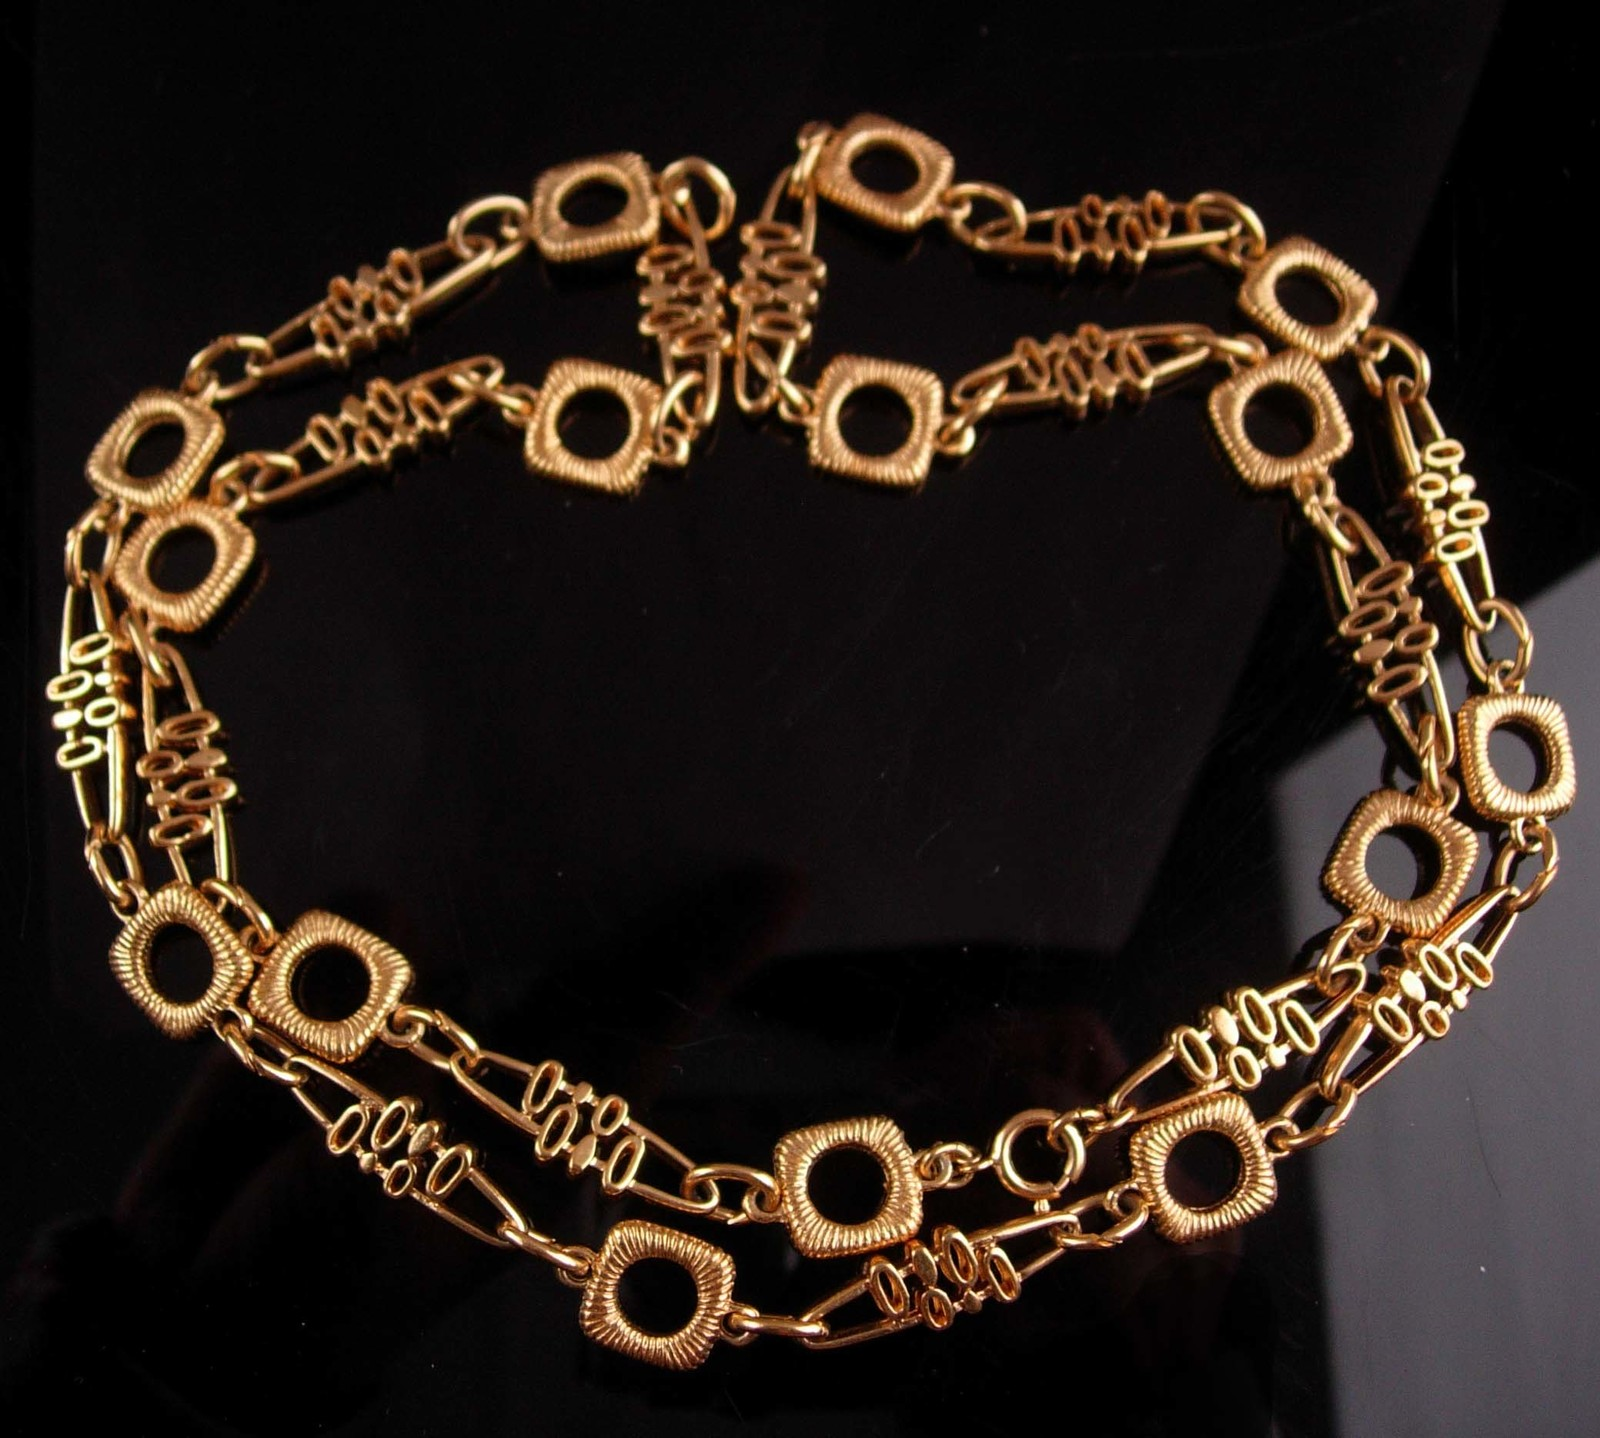 Ornate Trifari Necklace - couture Modernist design -  Mother of the Bride Gift -